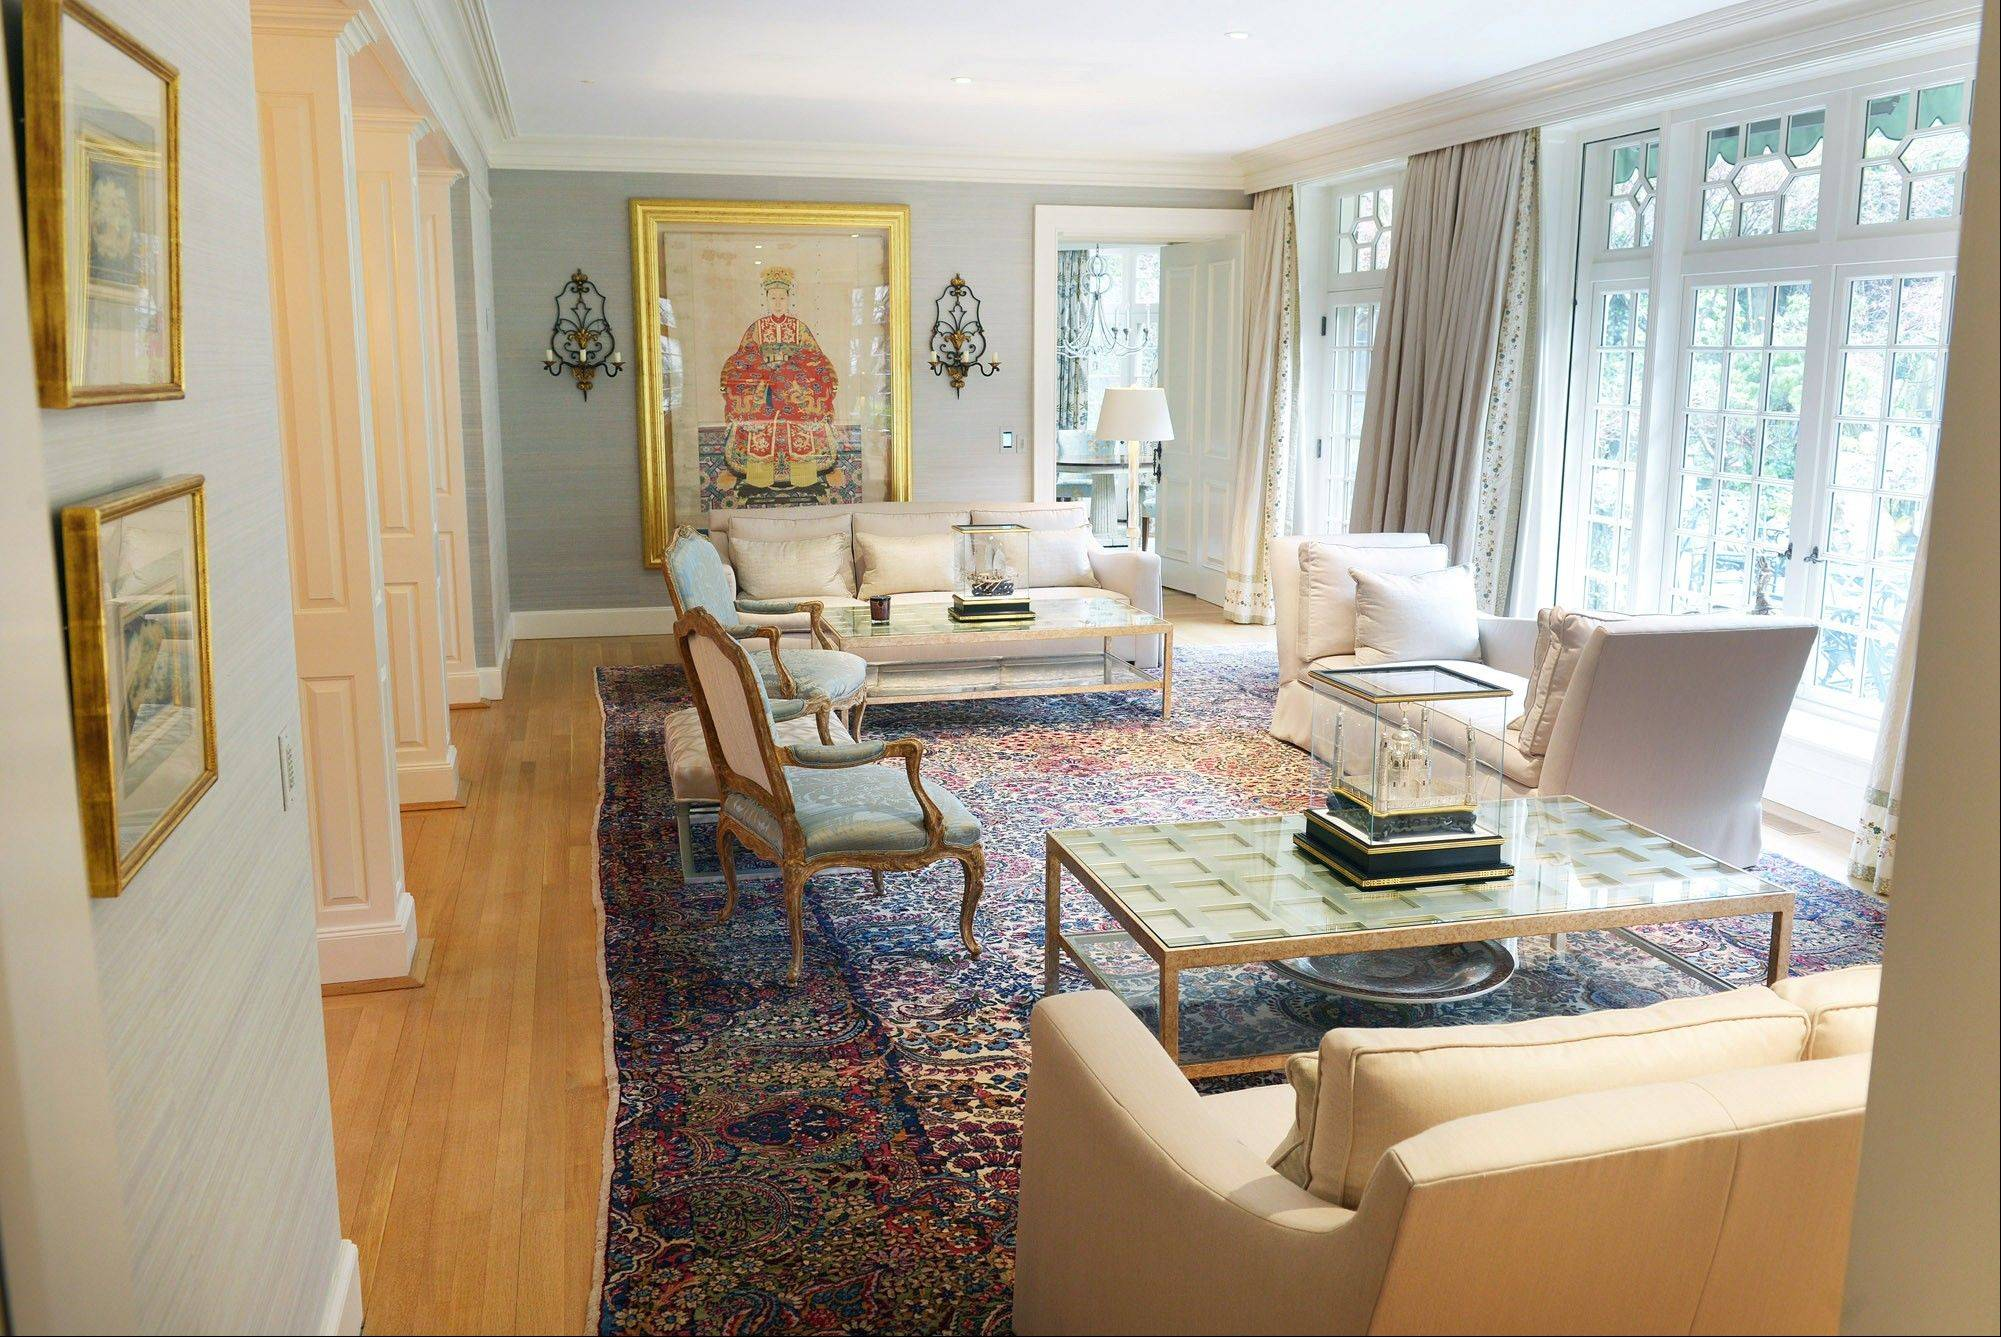 Choski's sitting room is seen at left. He can preset drapes in various rooms to open and close at precise times, which can help protect his rugs and furniture from harsh sunlight.